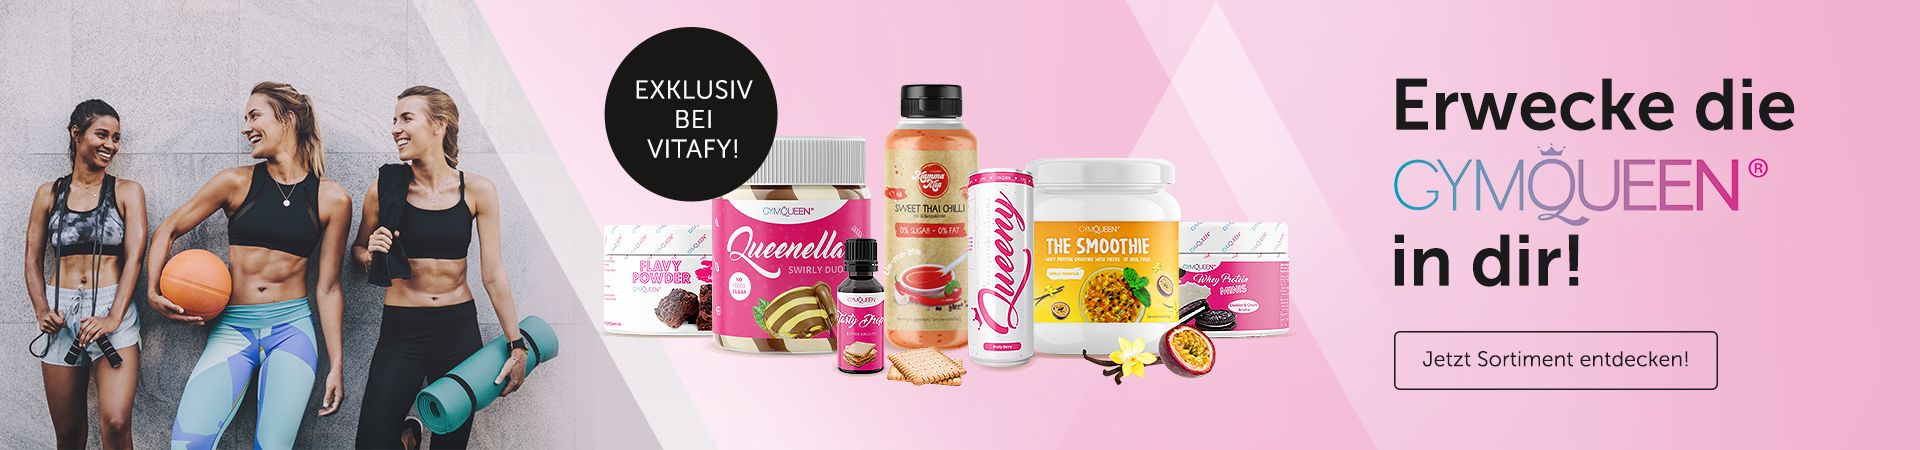 Produkte Flavy Powder, Queenella, Tasty Drops, Mamma Mia, Queeny, The Smoothie und Whey Protein Minis vor Fitness-Foto mit drei Frauen.